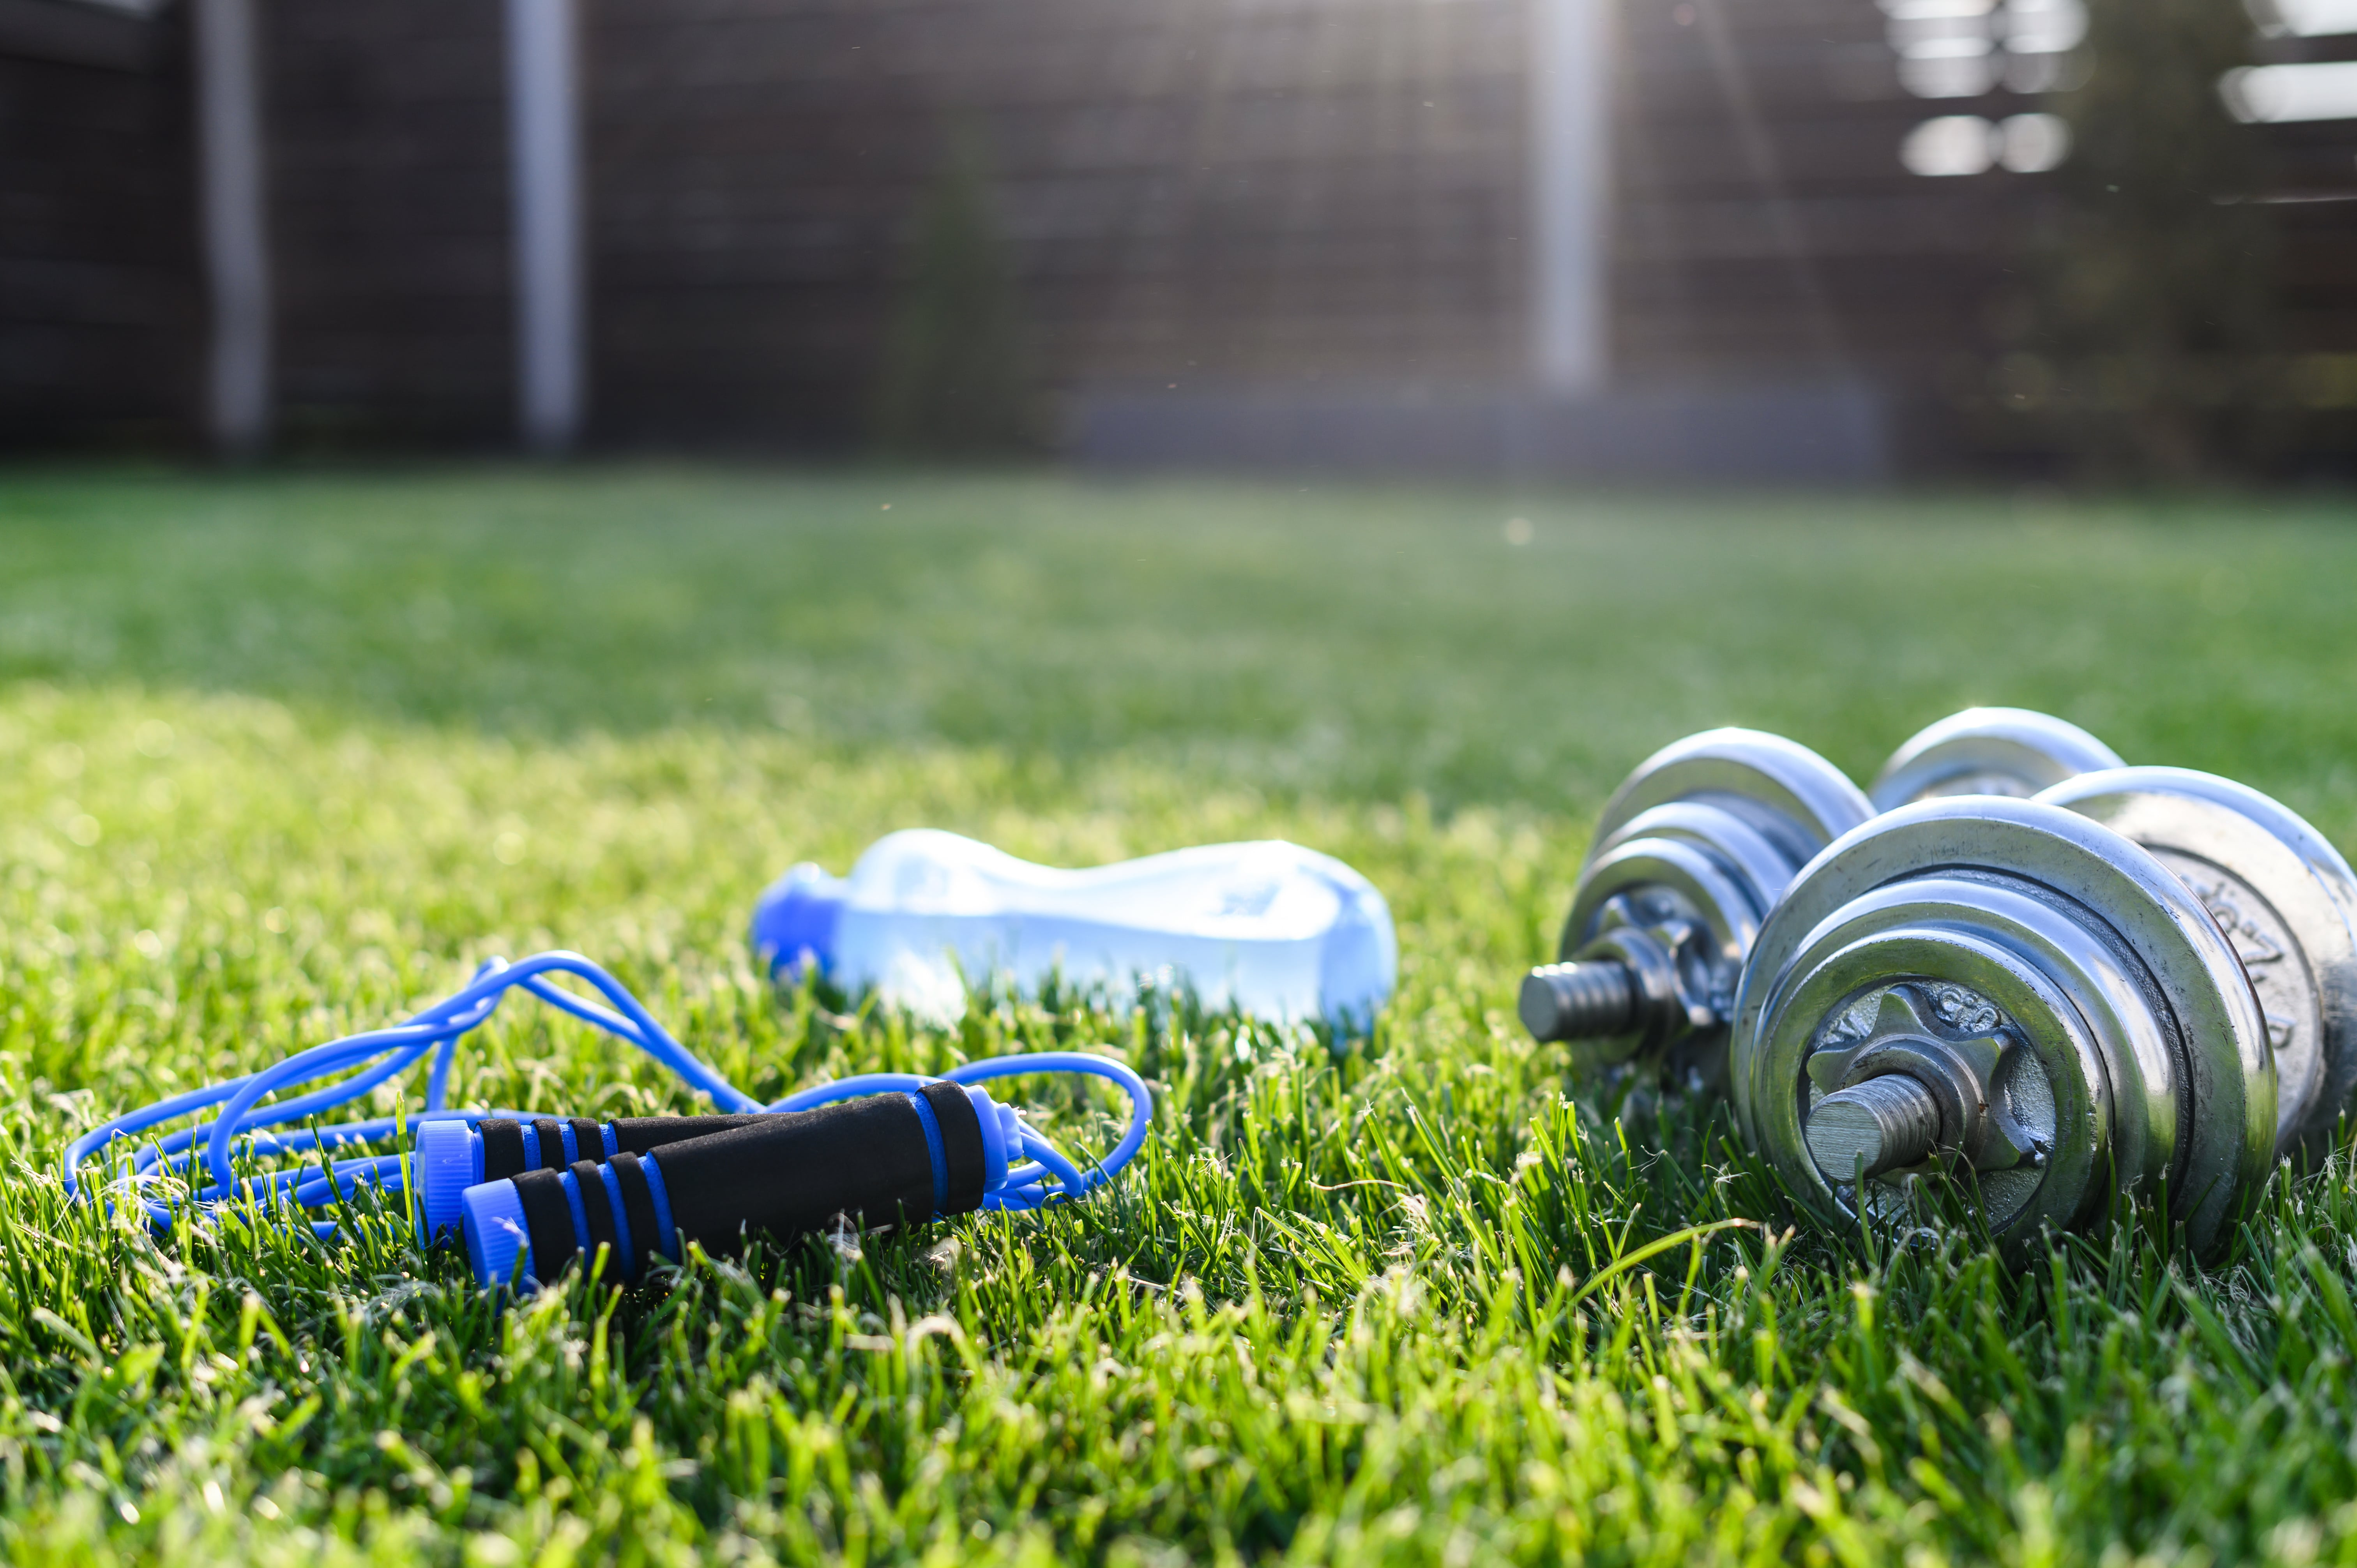 Workout in the backyard. Iron dumbbells, sports bottle of water and jump rope on the greenlawn